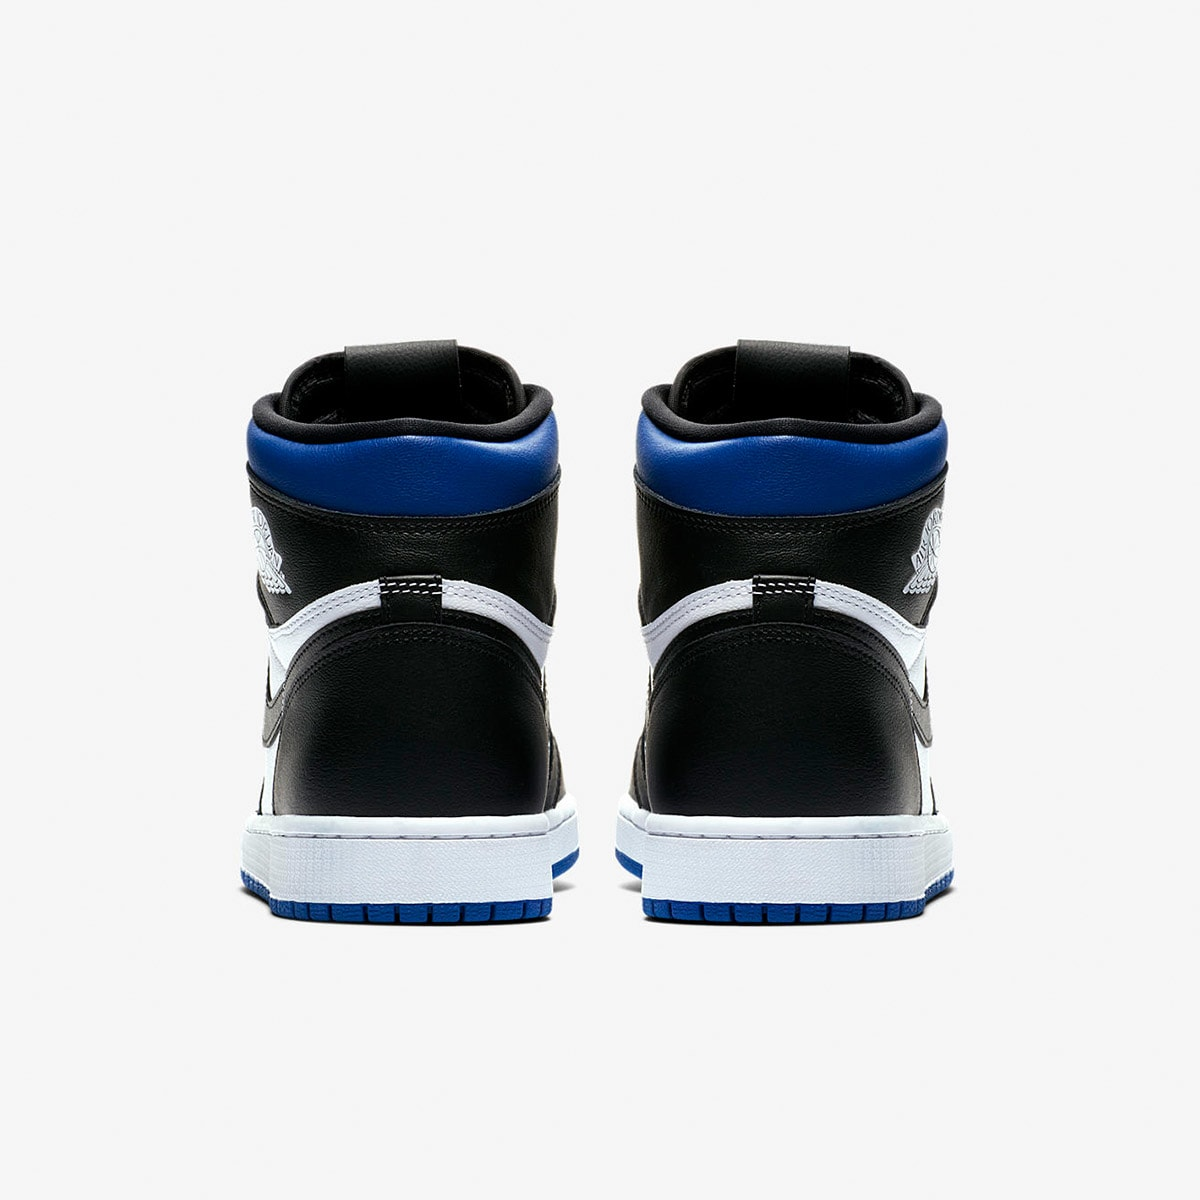 End Features Air Jordan 1 Retro Hi Game Royal Toe Register Now On End Launches